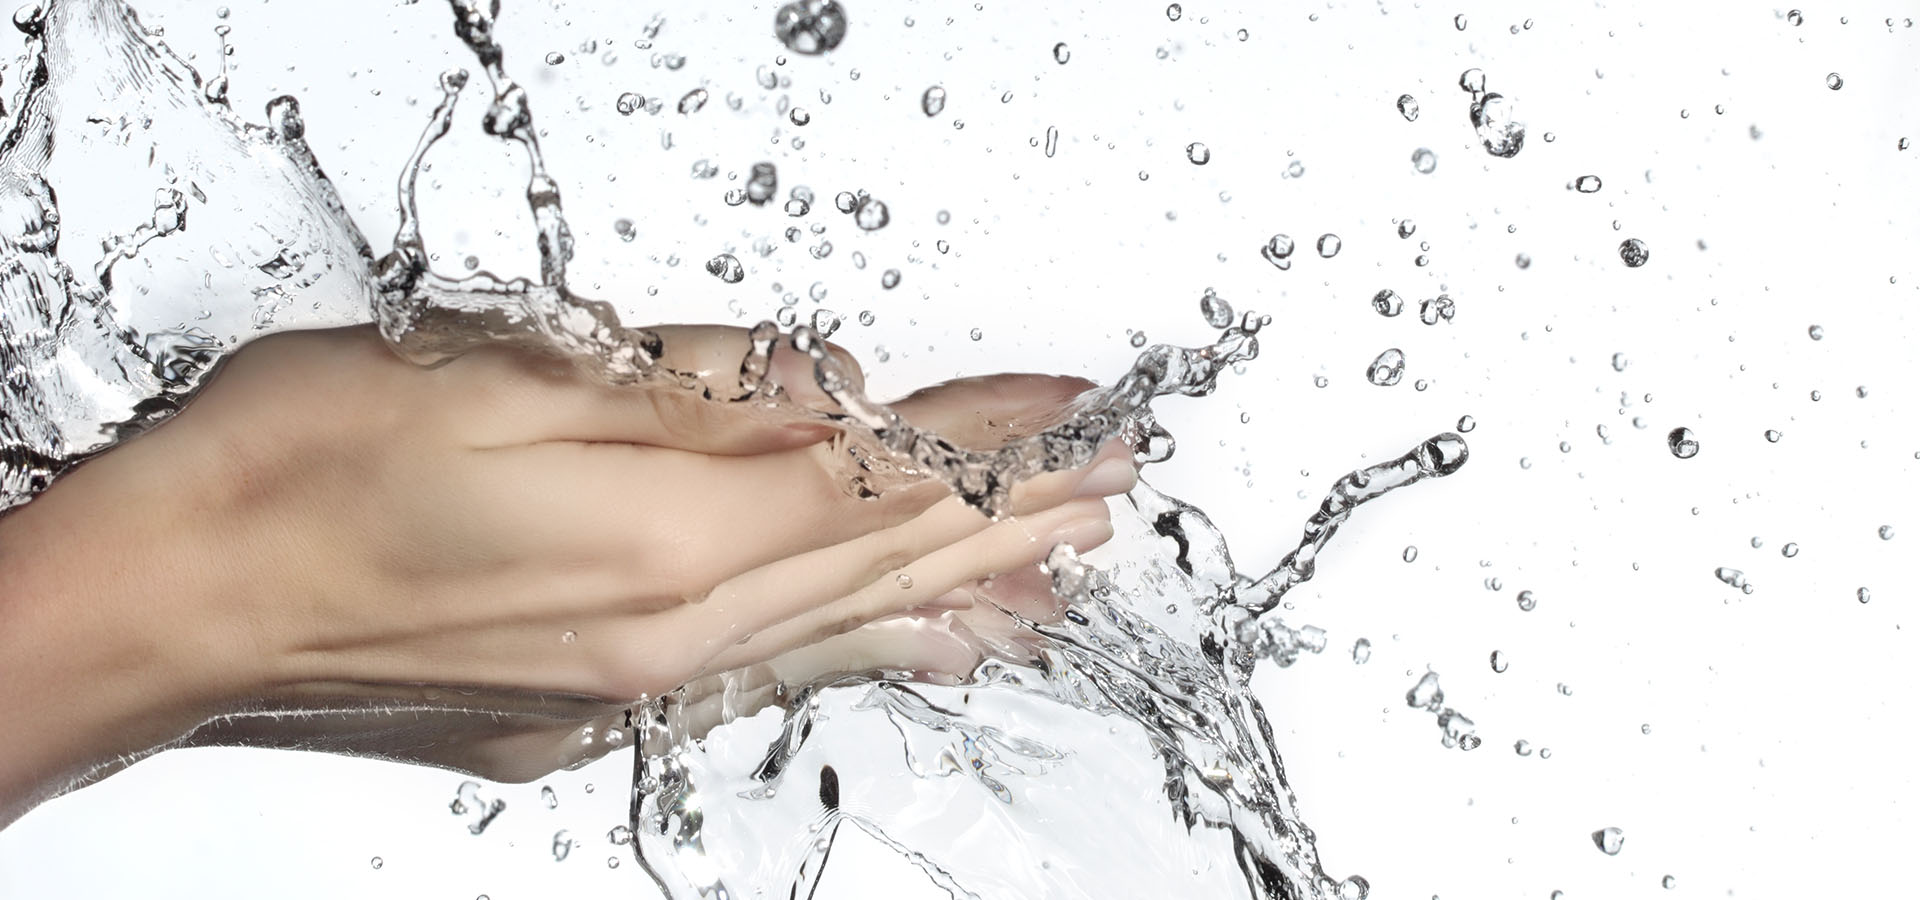 Hands and splashing water on white background.